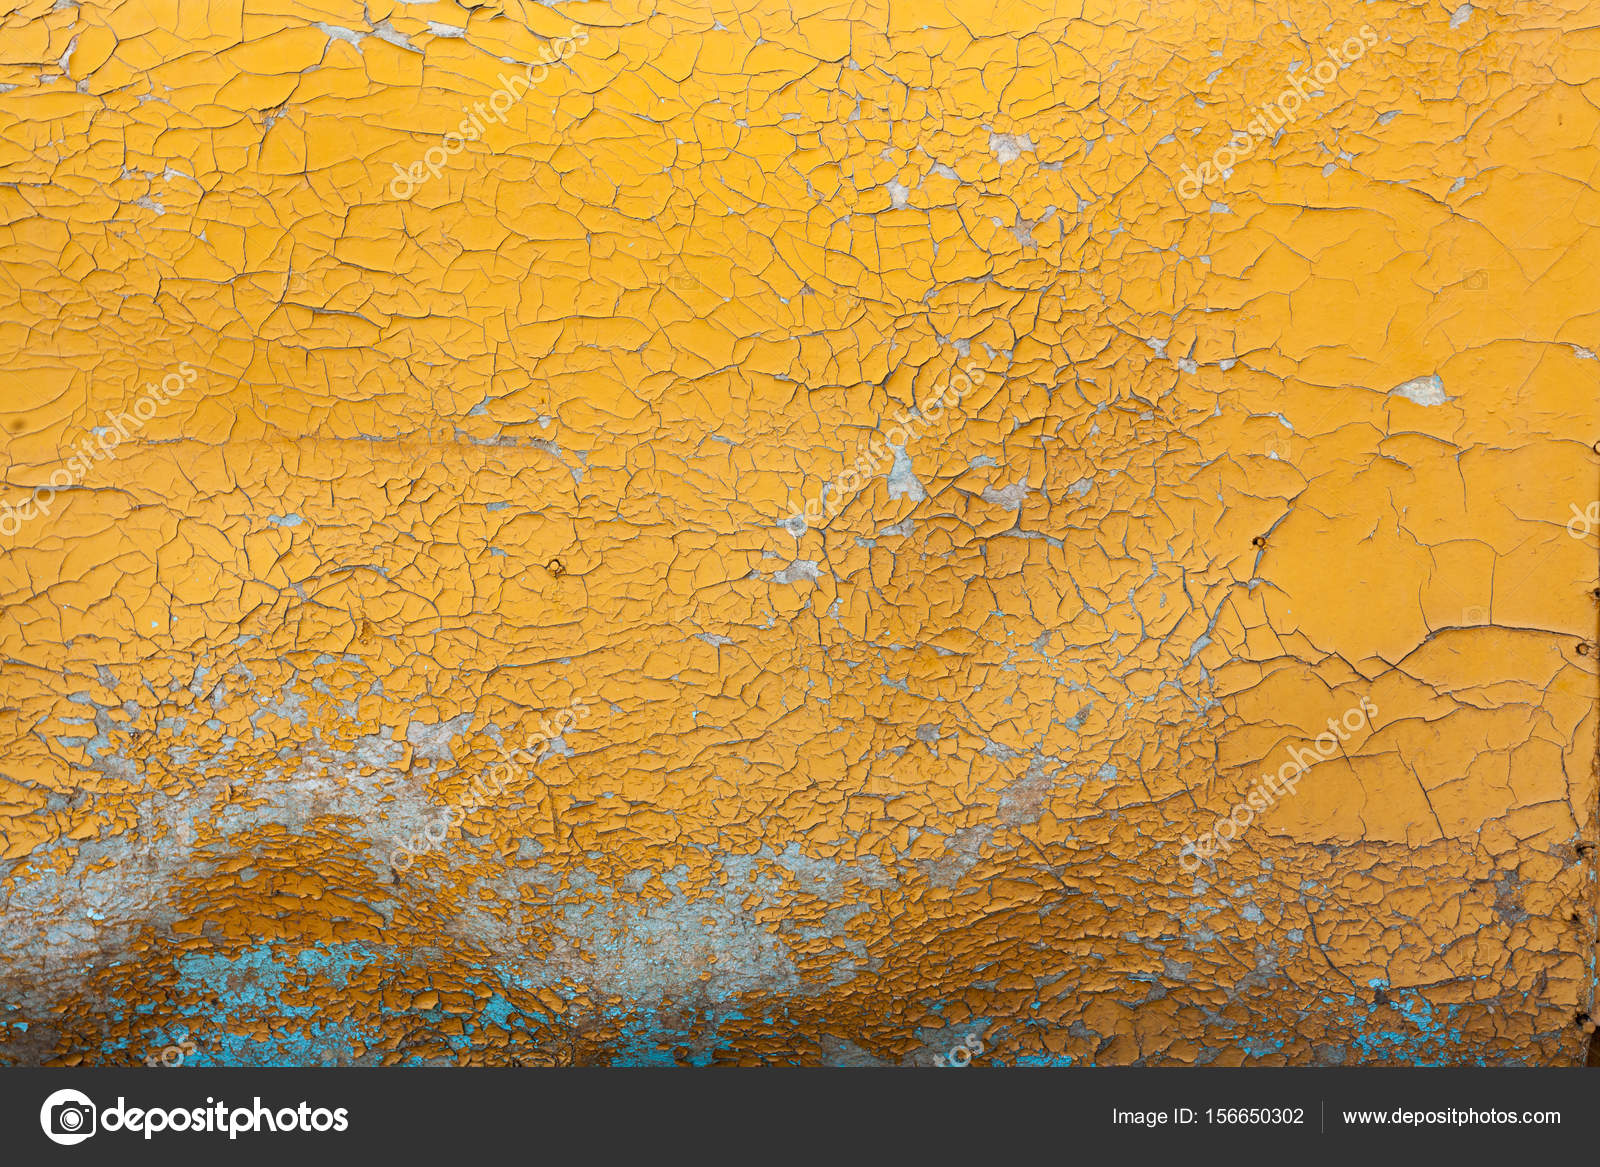 Peeling Paint On Wall Seamless Texture Pattern Of Rustic Yellow Grunge Material Stock